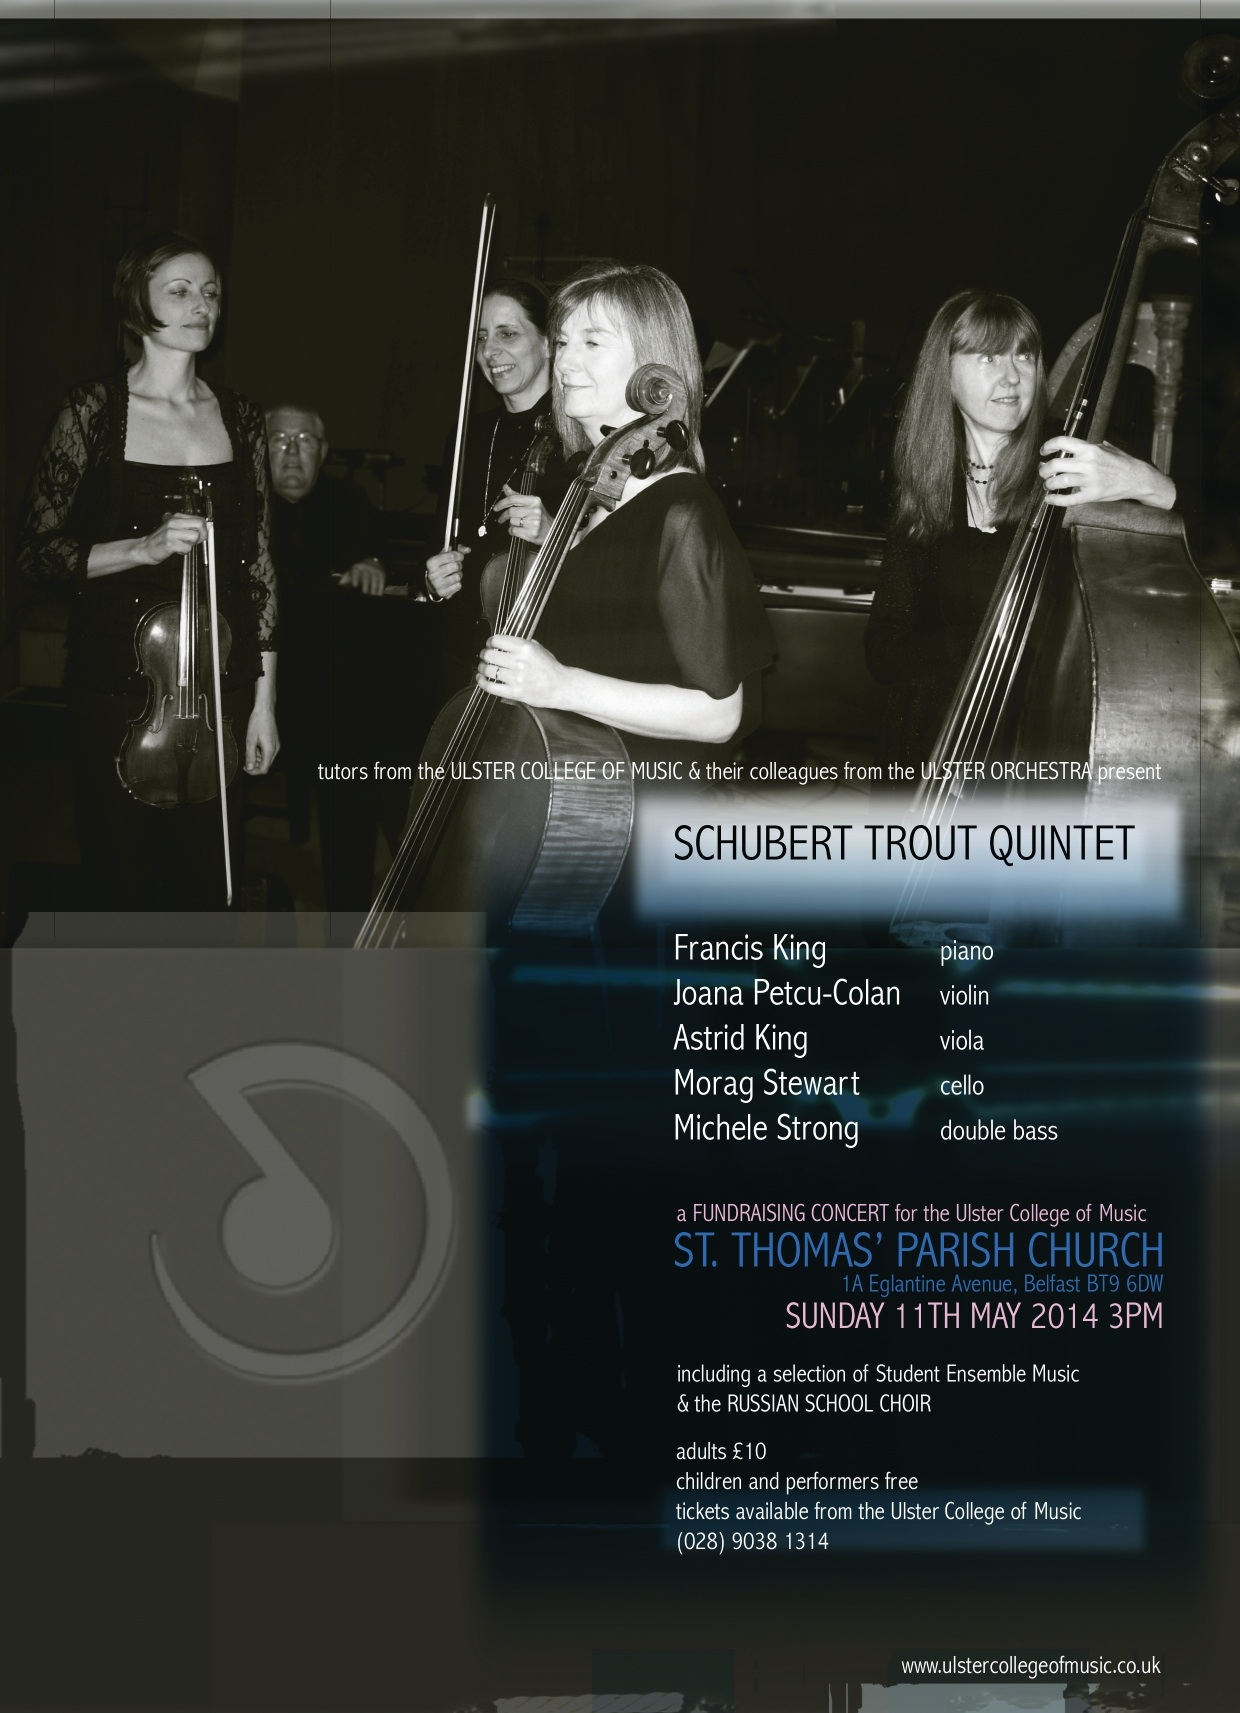 Schubert Trout Quintet - 2014